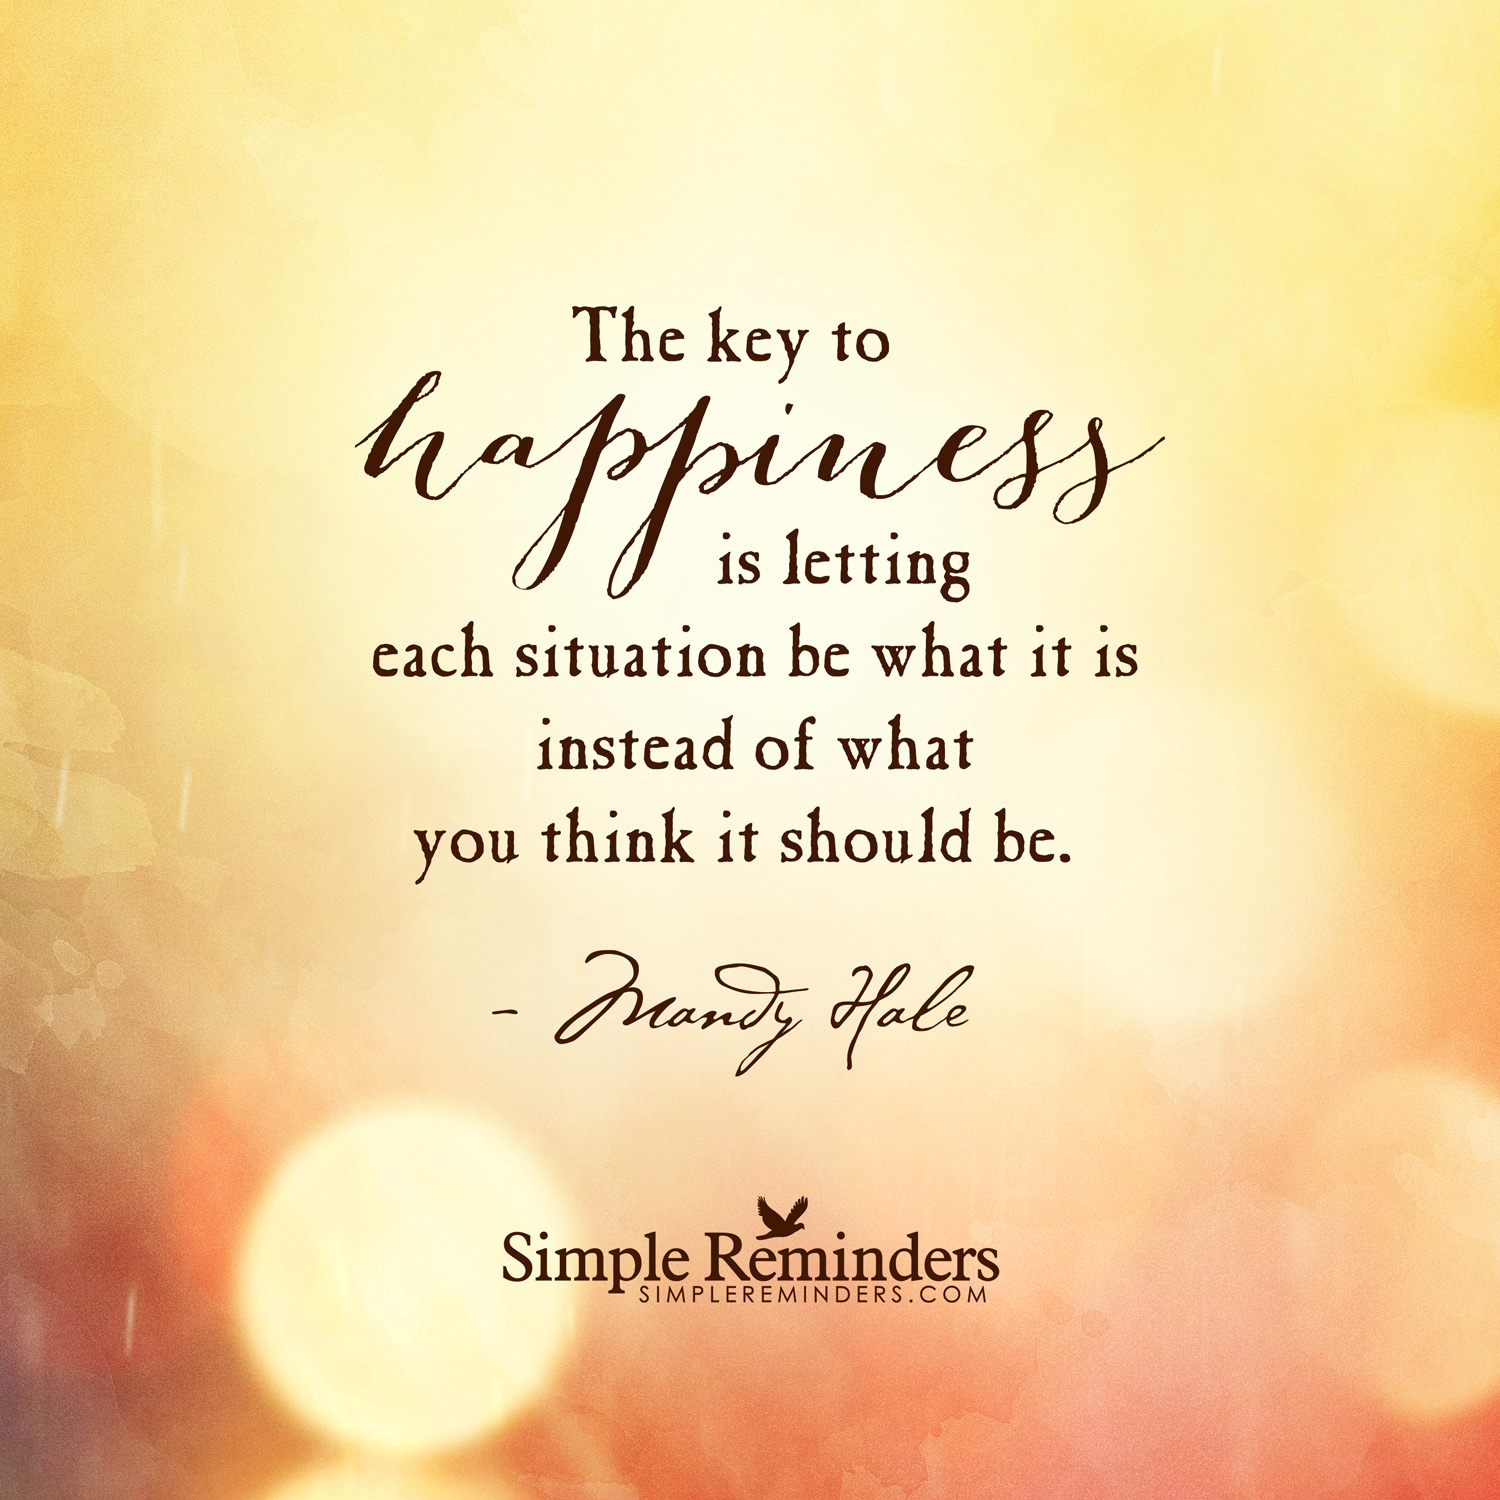 Mandy Hale Quotes Happiness. QuotesGram